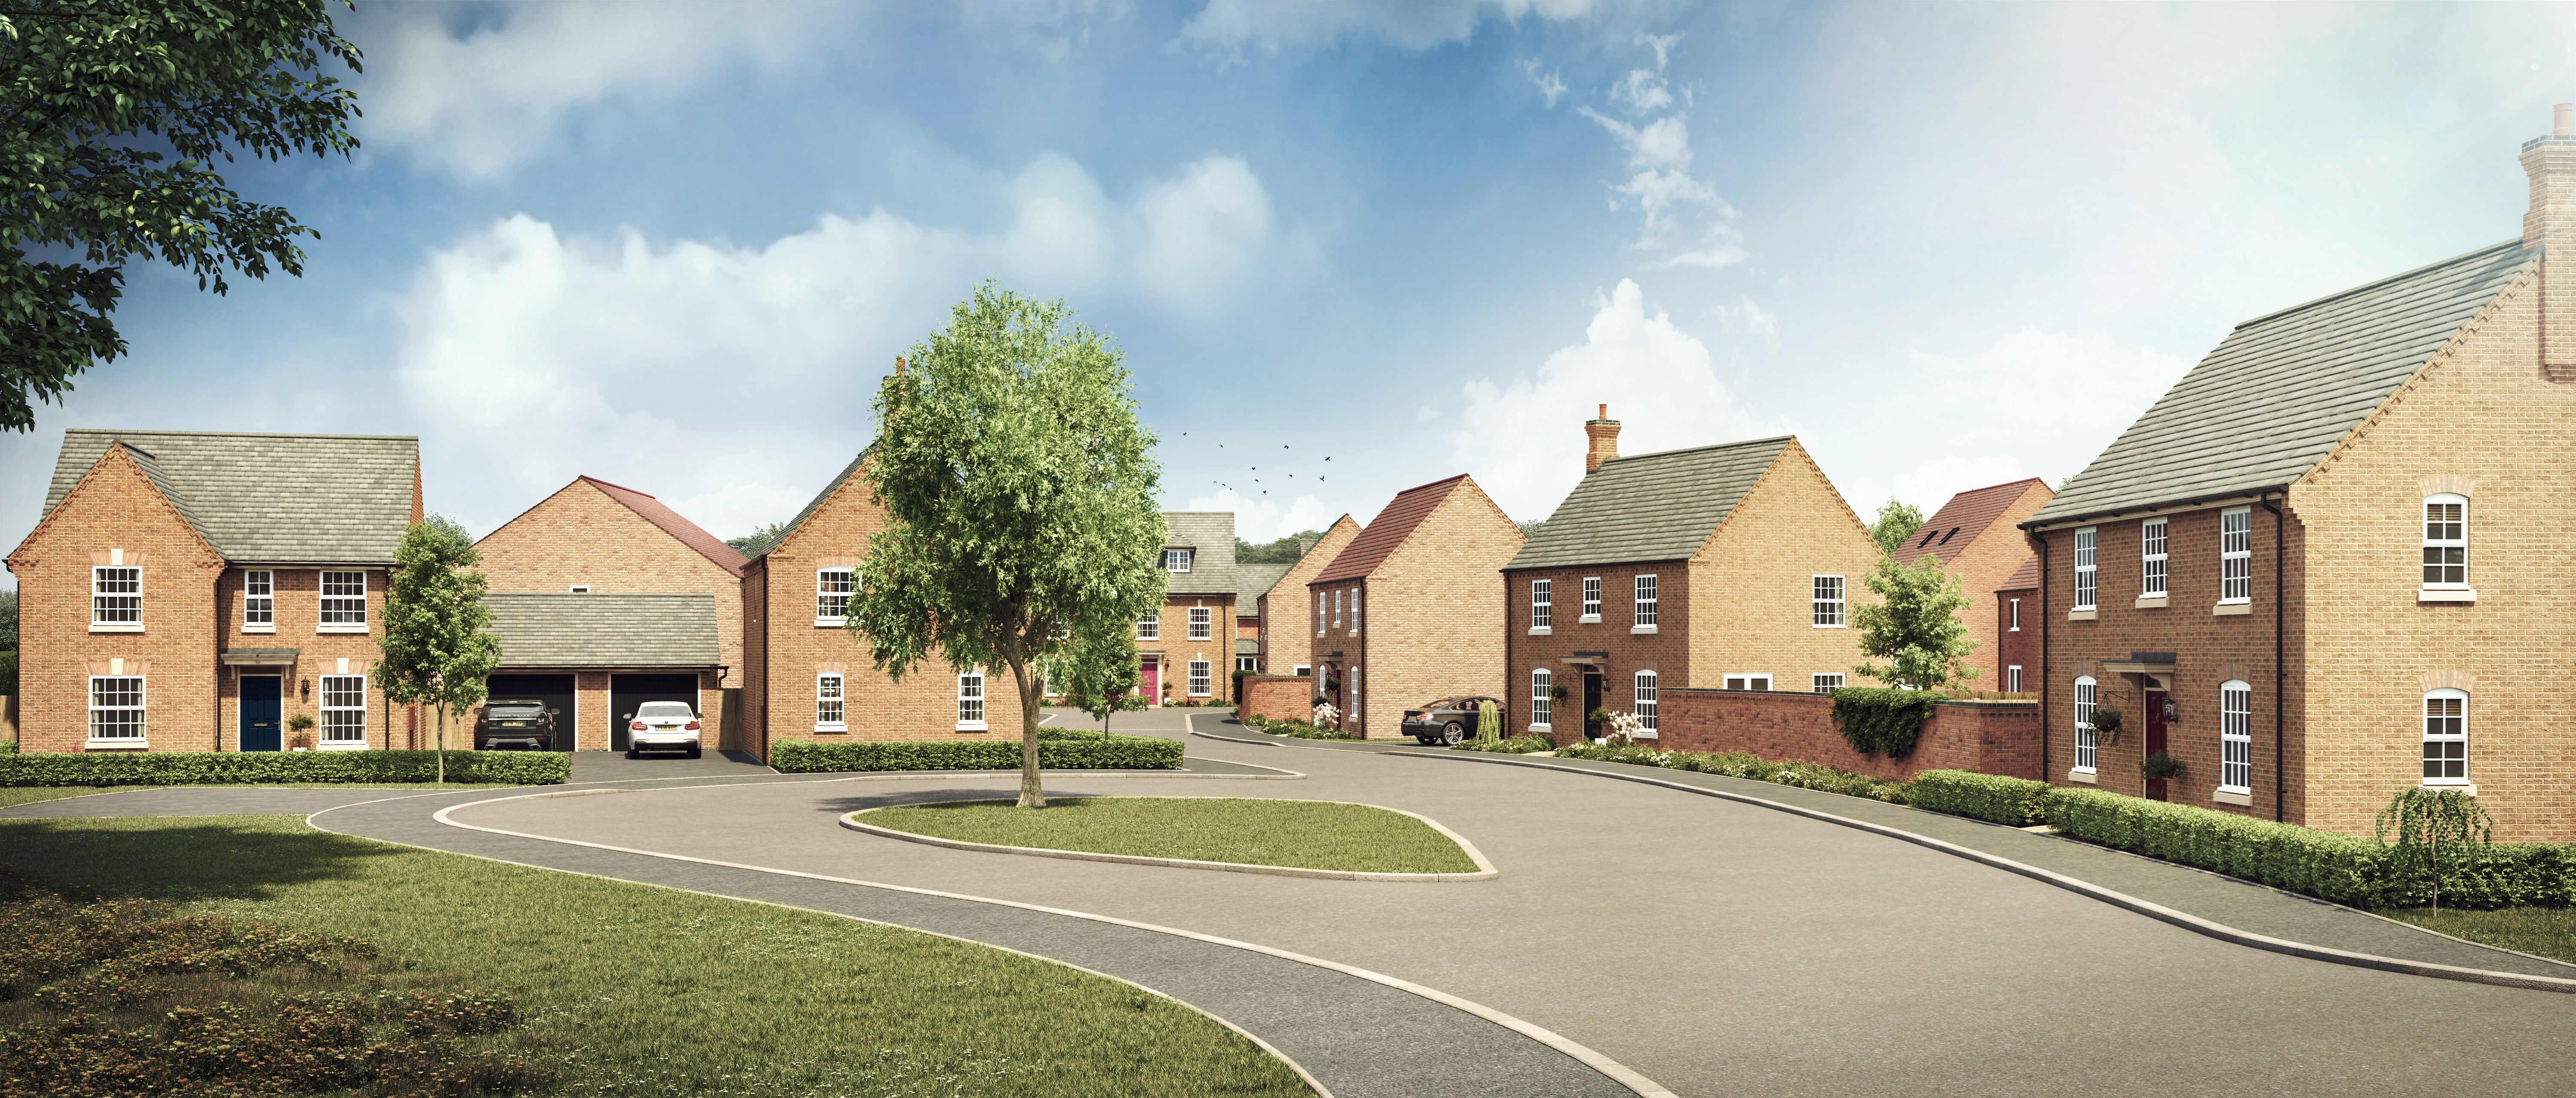 First residents at Irthlingborough development to move in this September